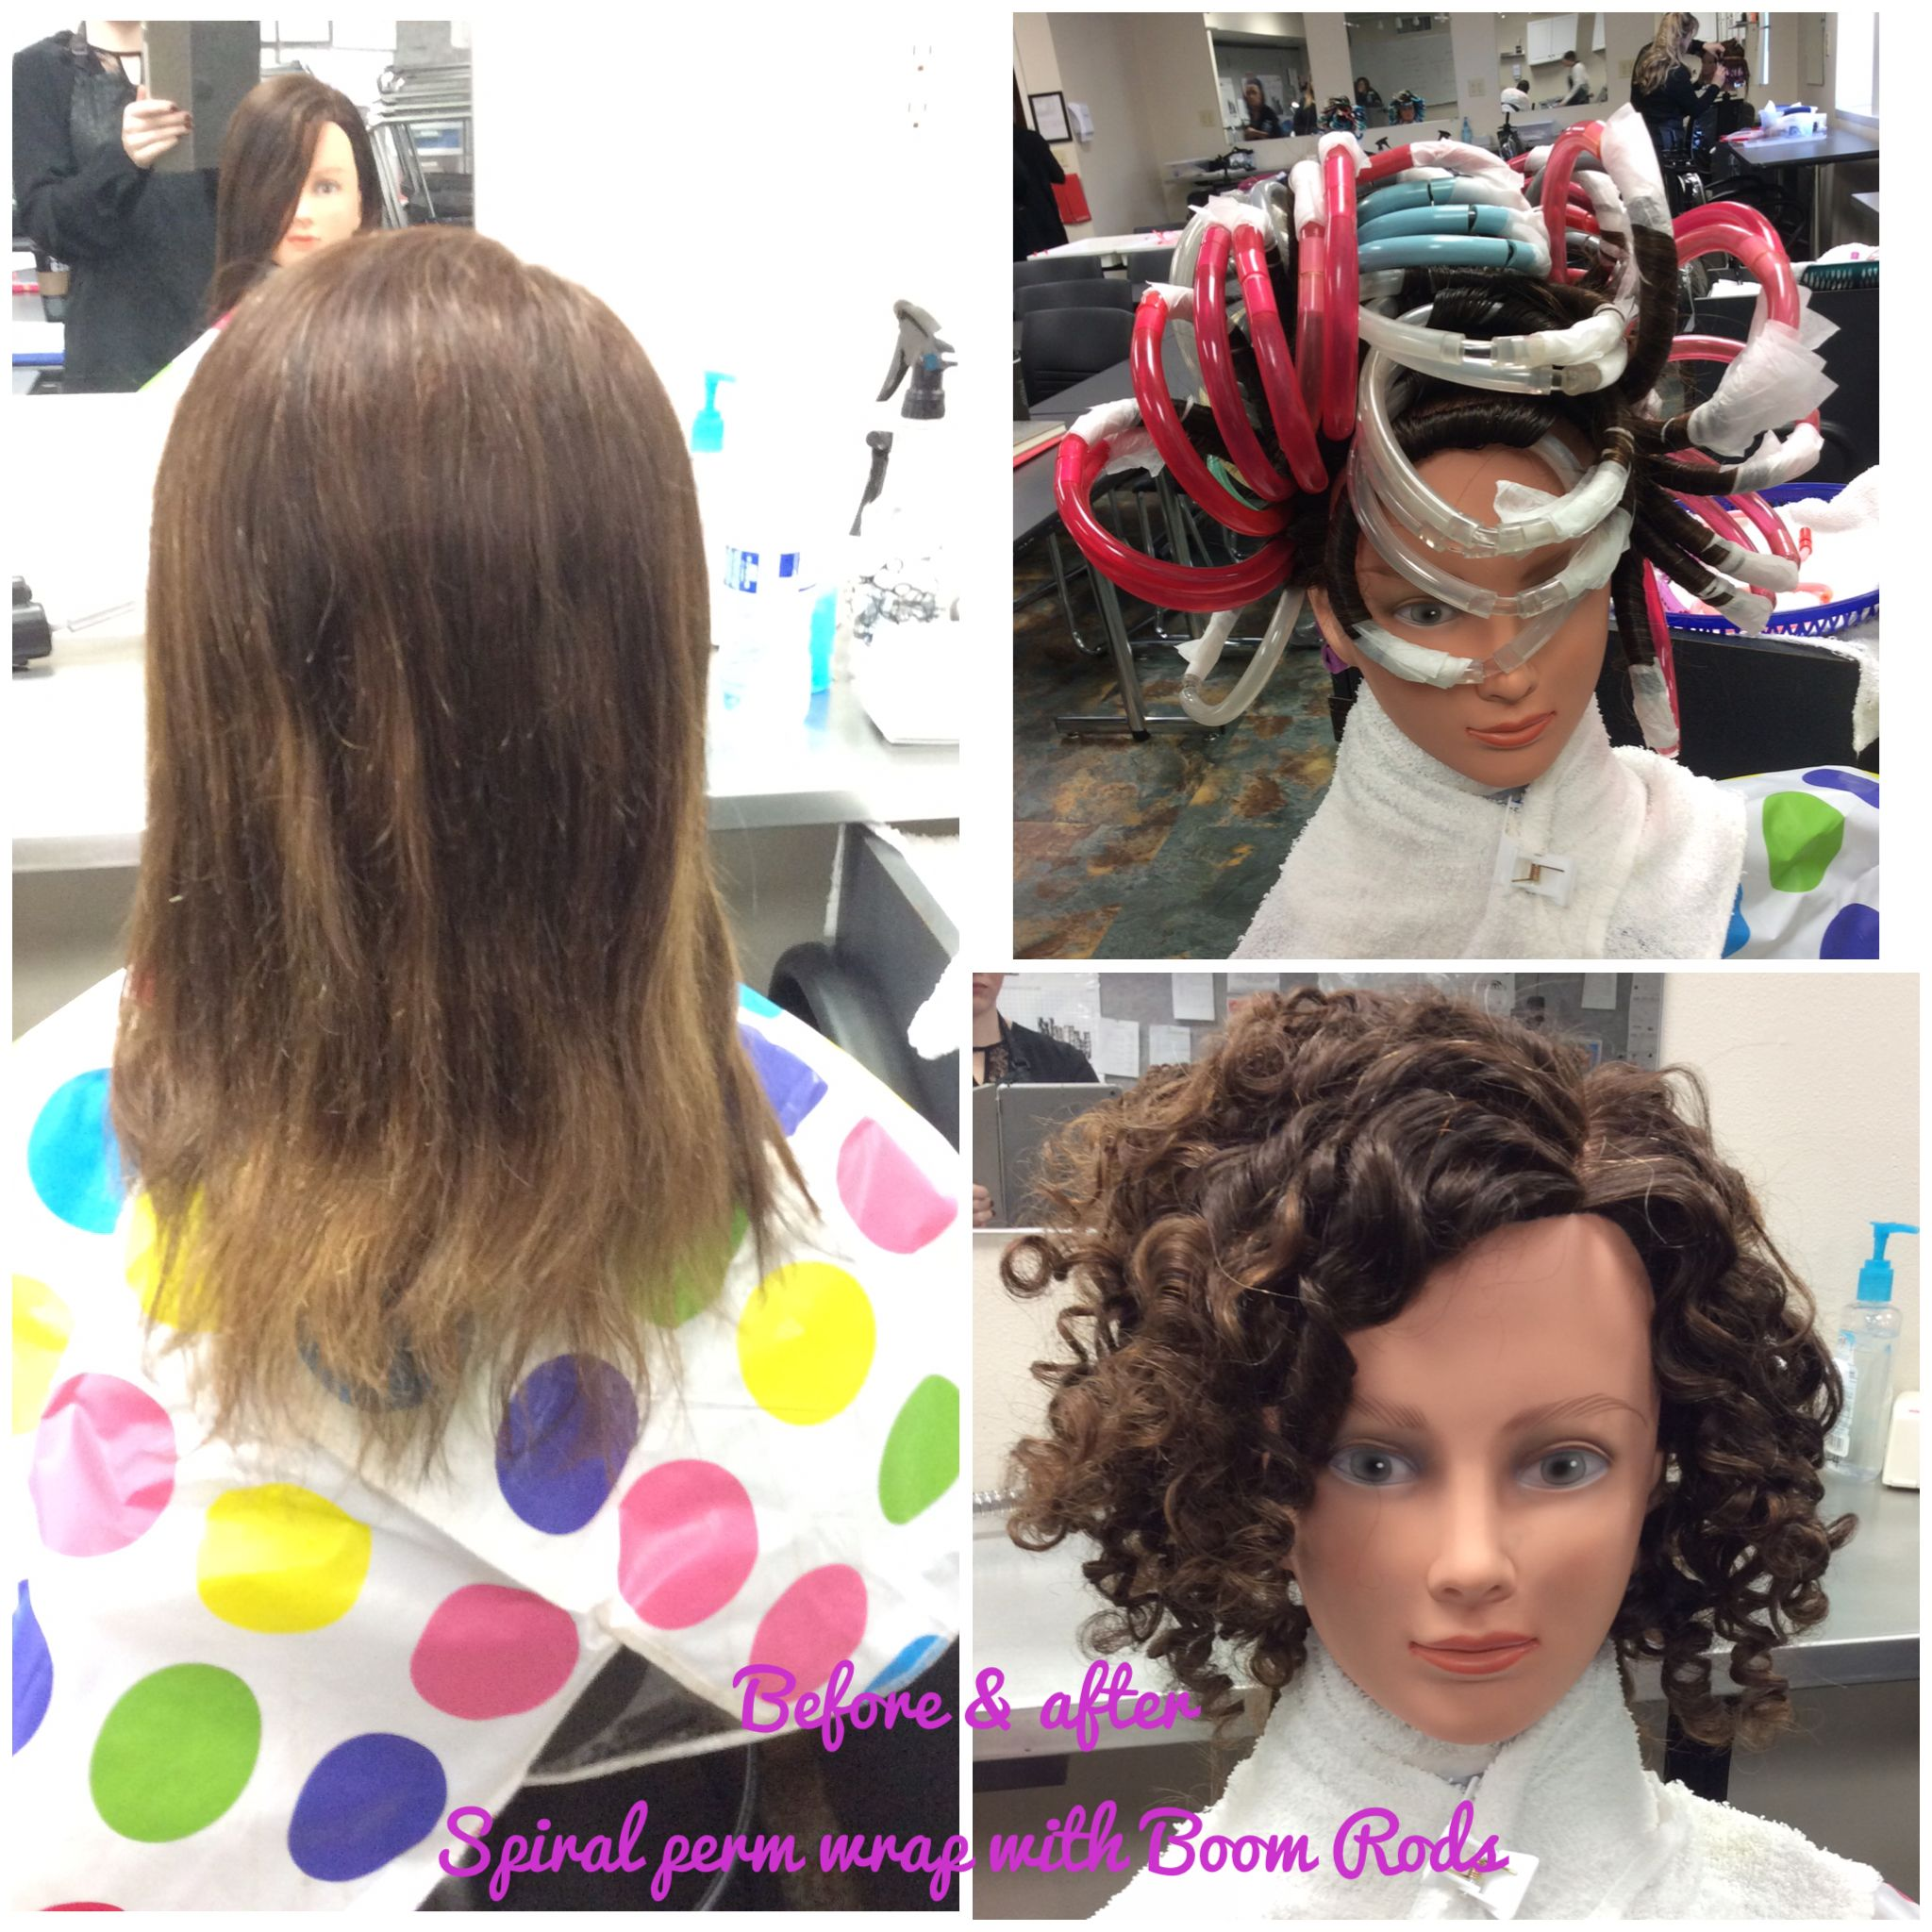 spiral perm wrap w boom rods nov 30 chemical texture services